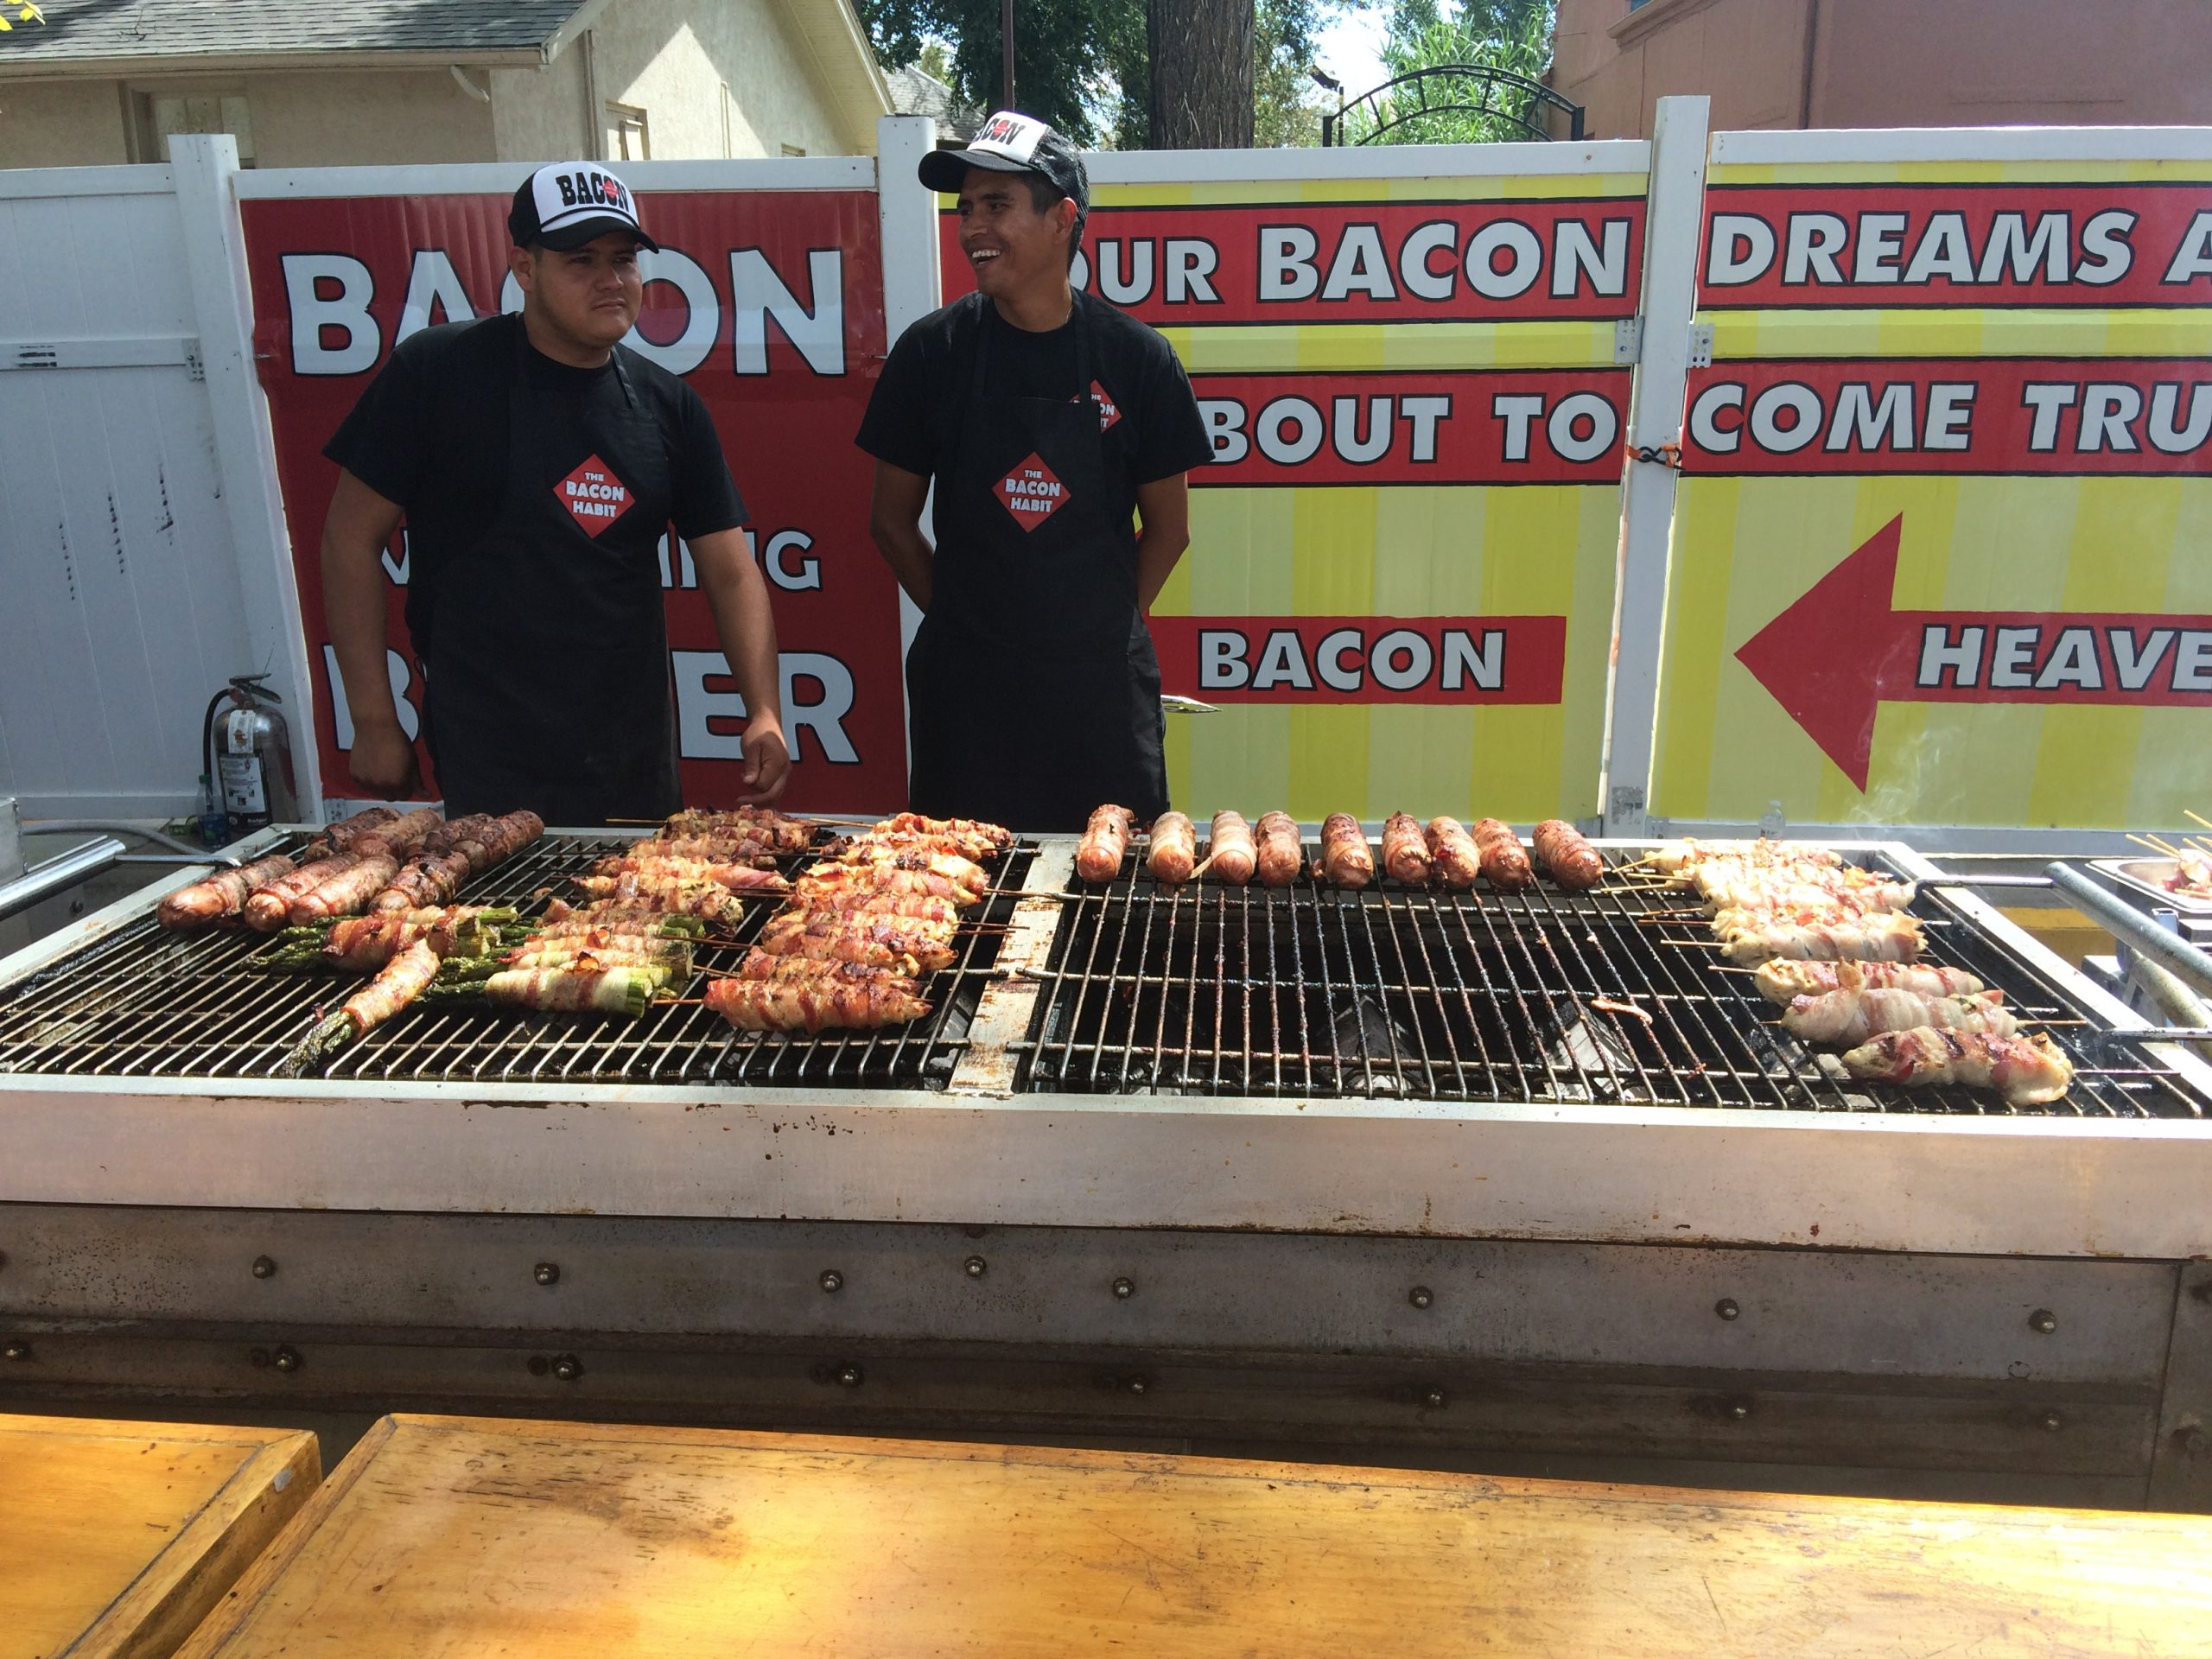 Vendors sell a variety of bacon-wrapped delicacies.